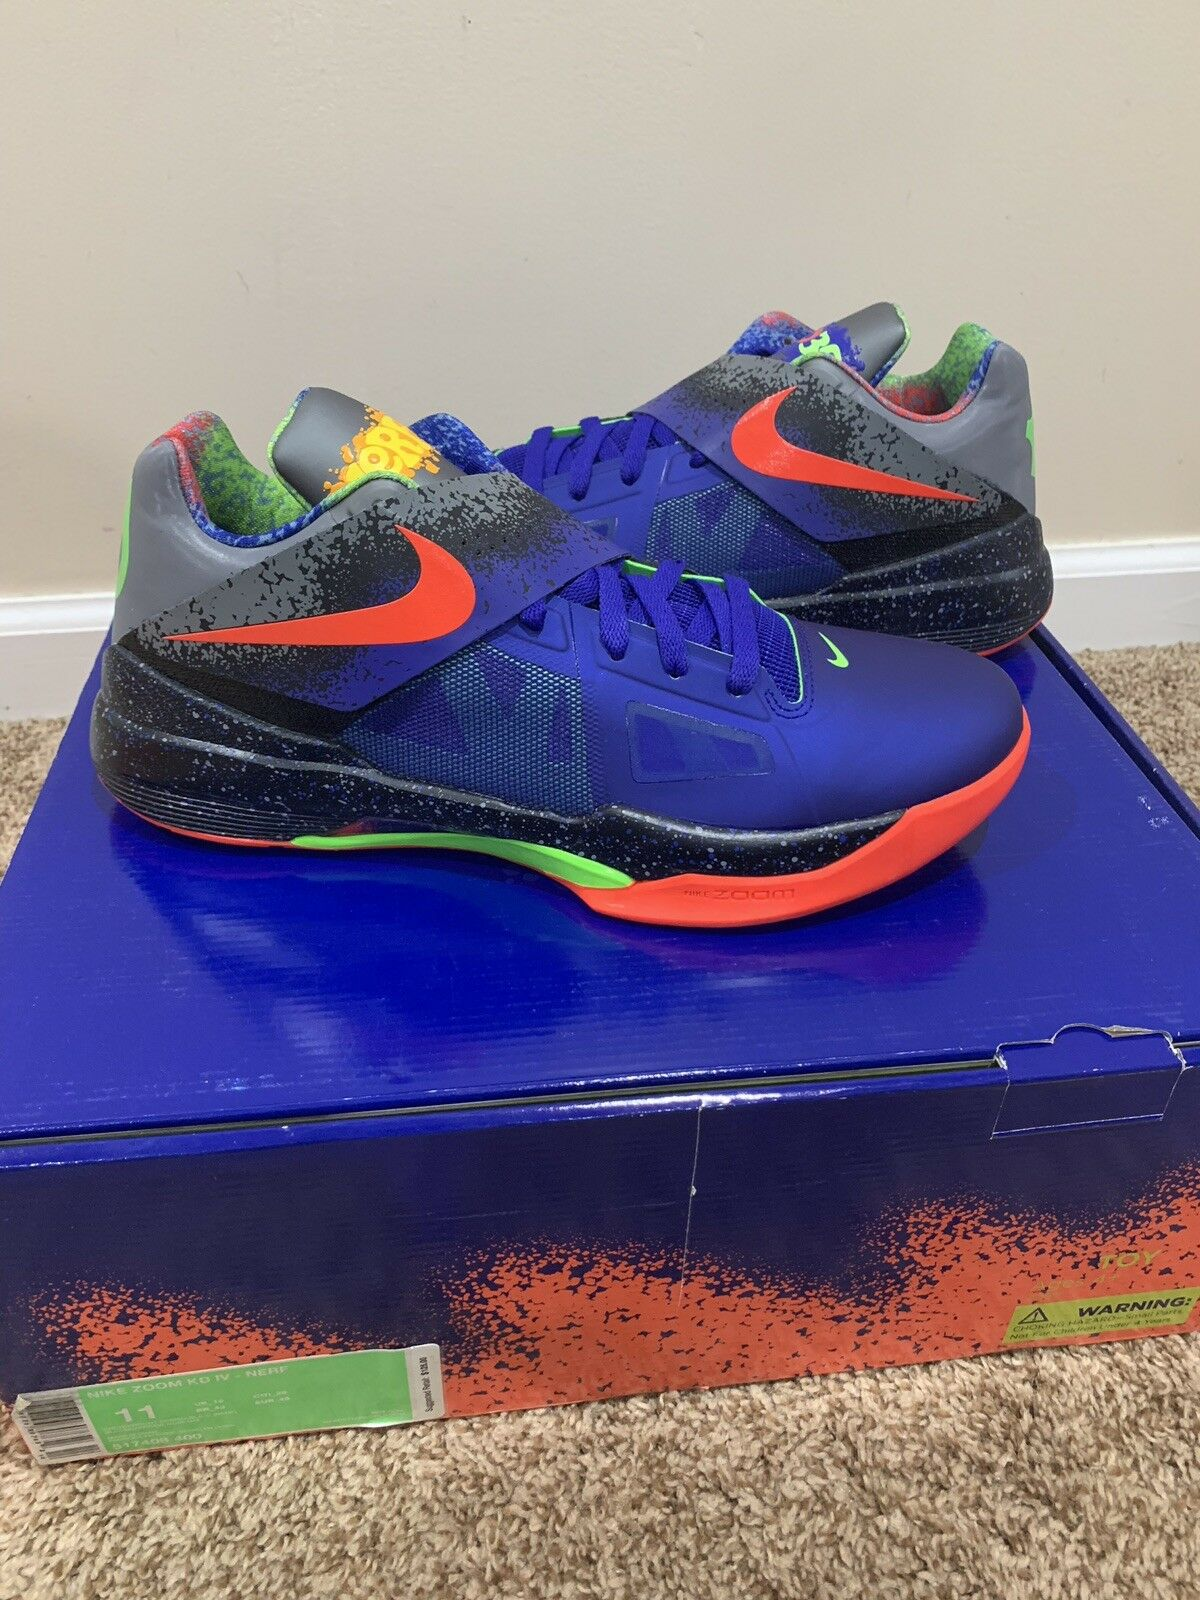 NIKE KD IV 4 NERF 517408-400 DS Size 11 Limited Off White Yeezy Quickstrike